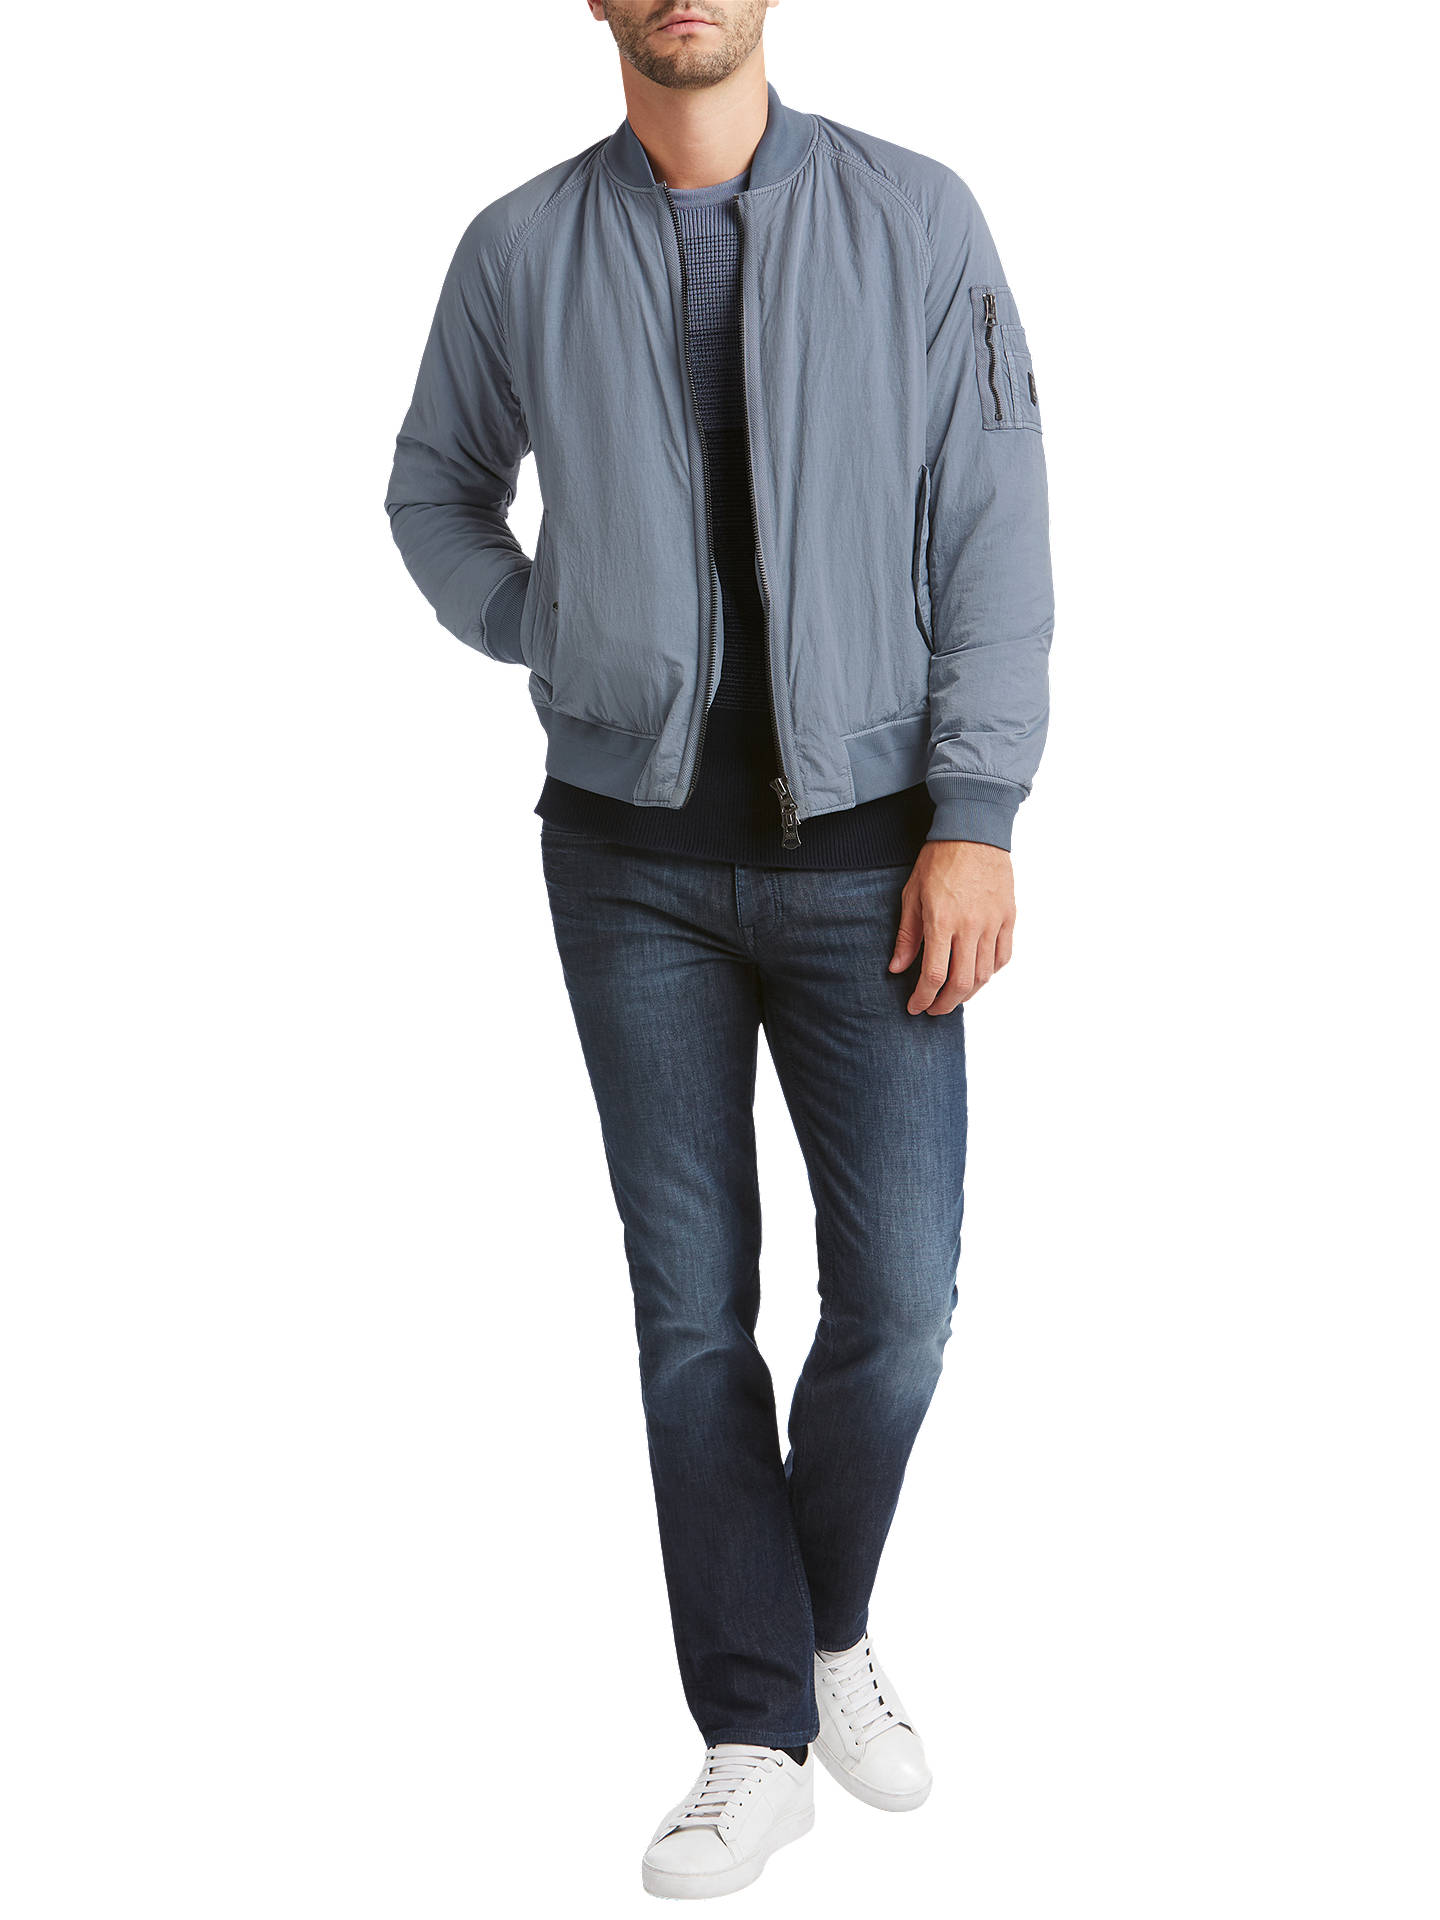 BuyBOSS Orange Onito -D MA-1 Bomber Jacket, Open Blue, 36R Online at johnlewis.com